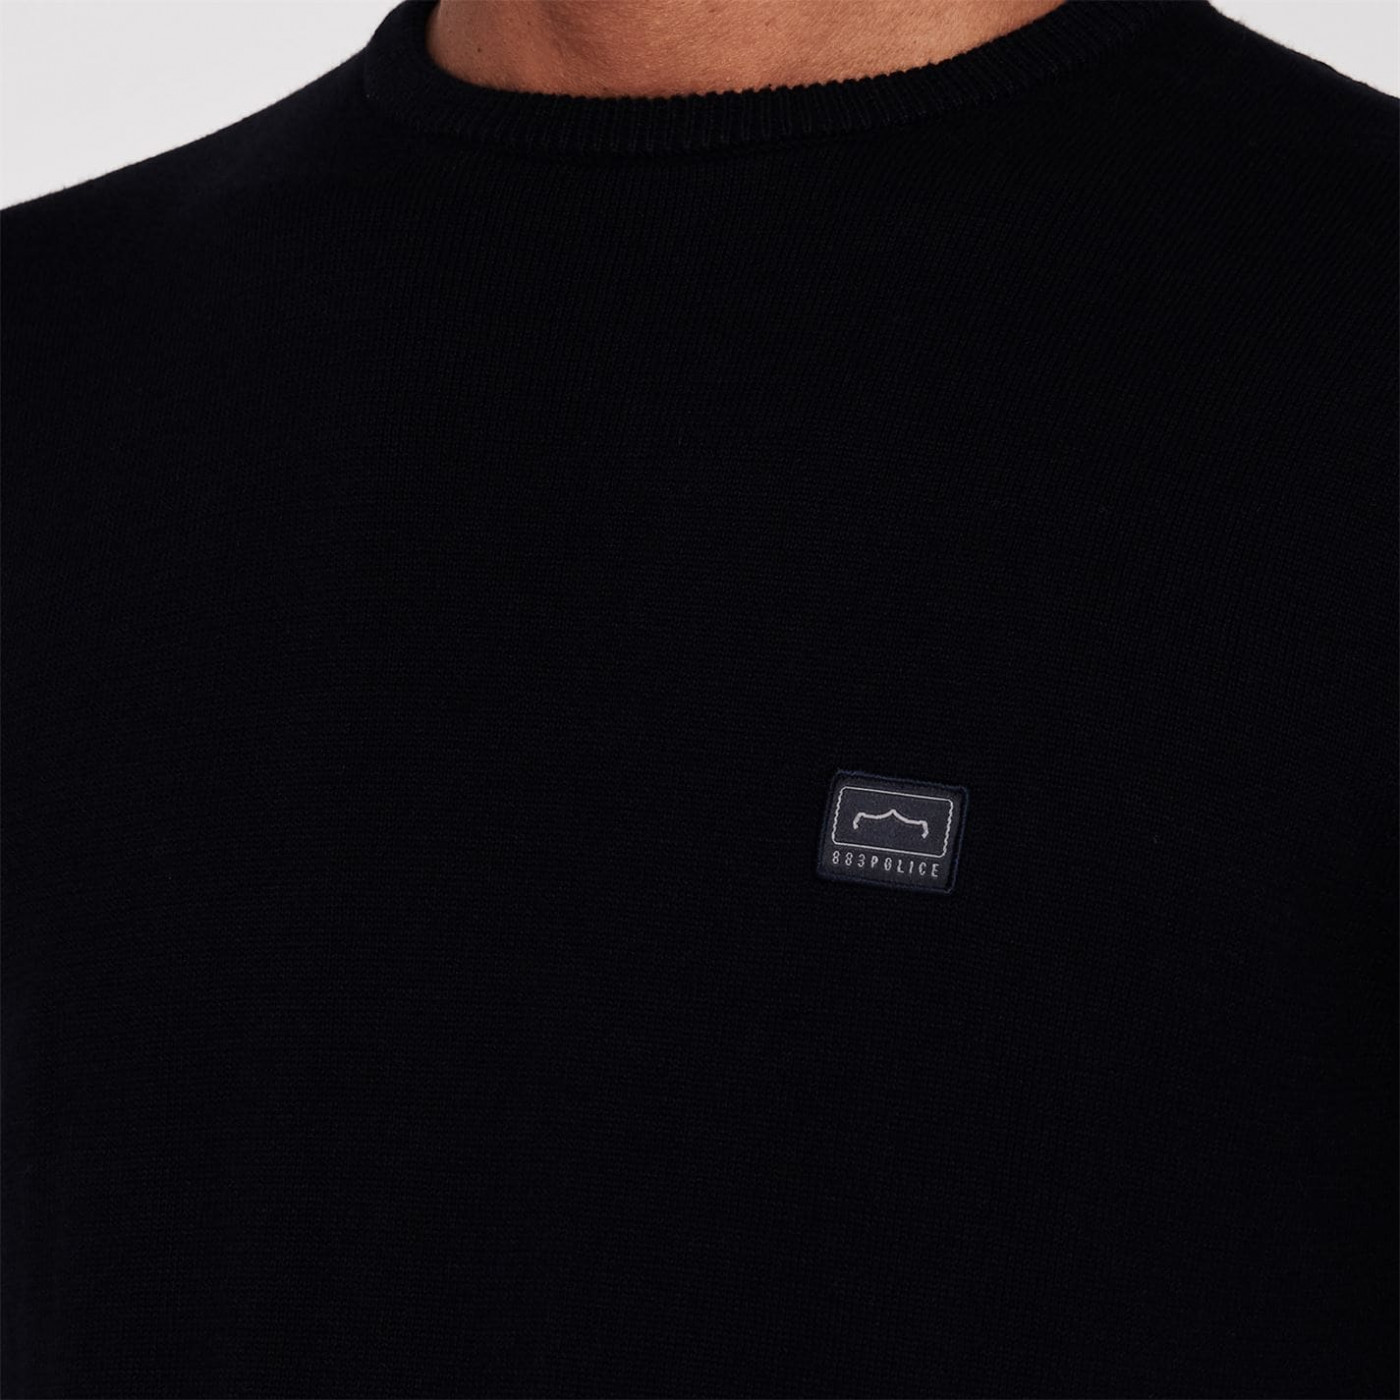 883 Police Crew Neck Knitted Jumper